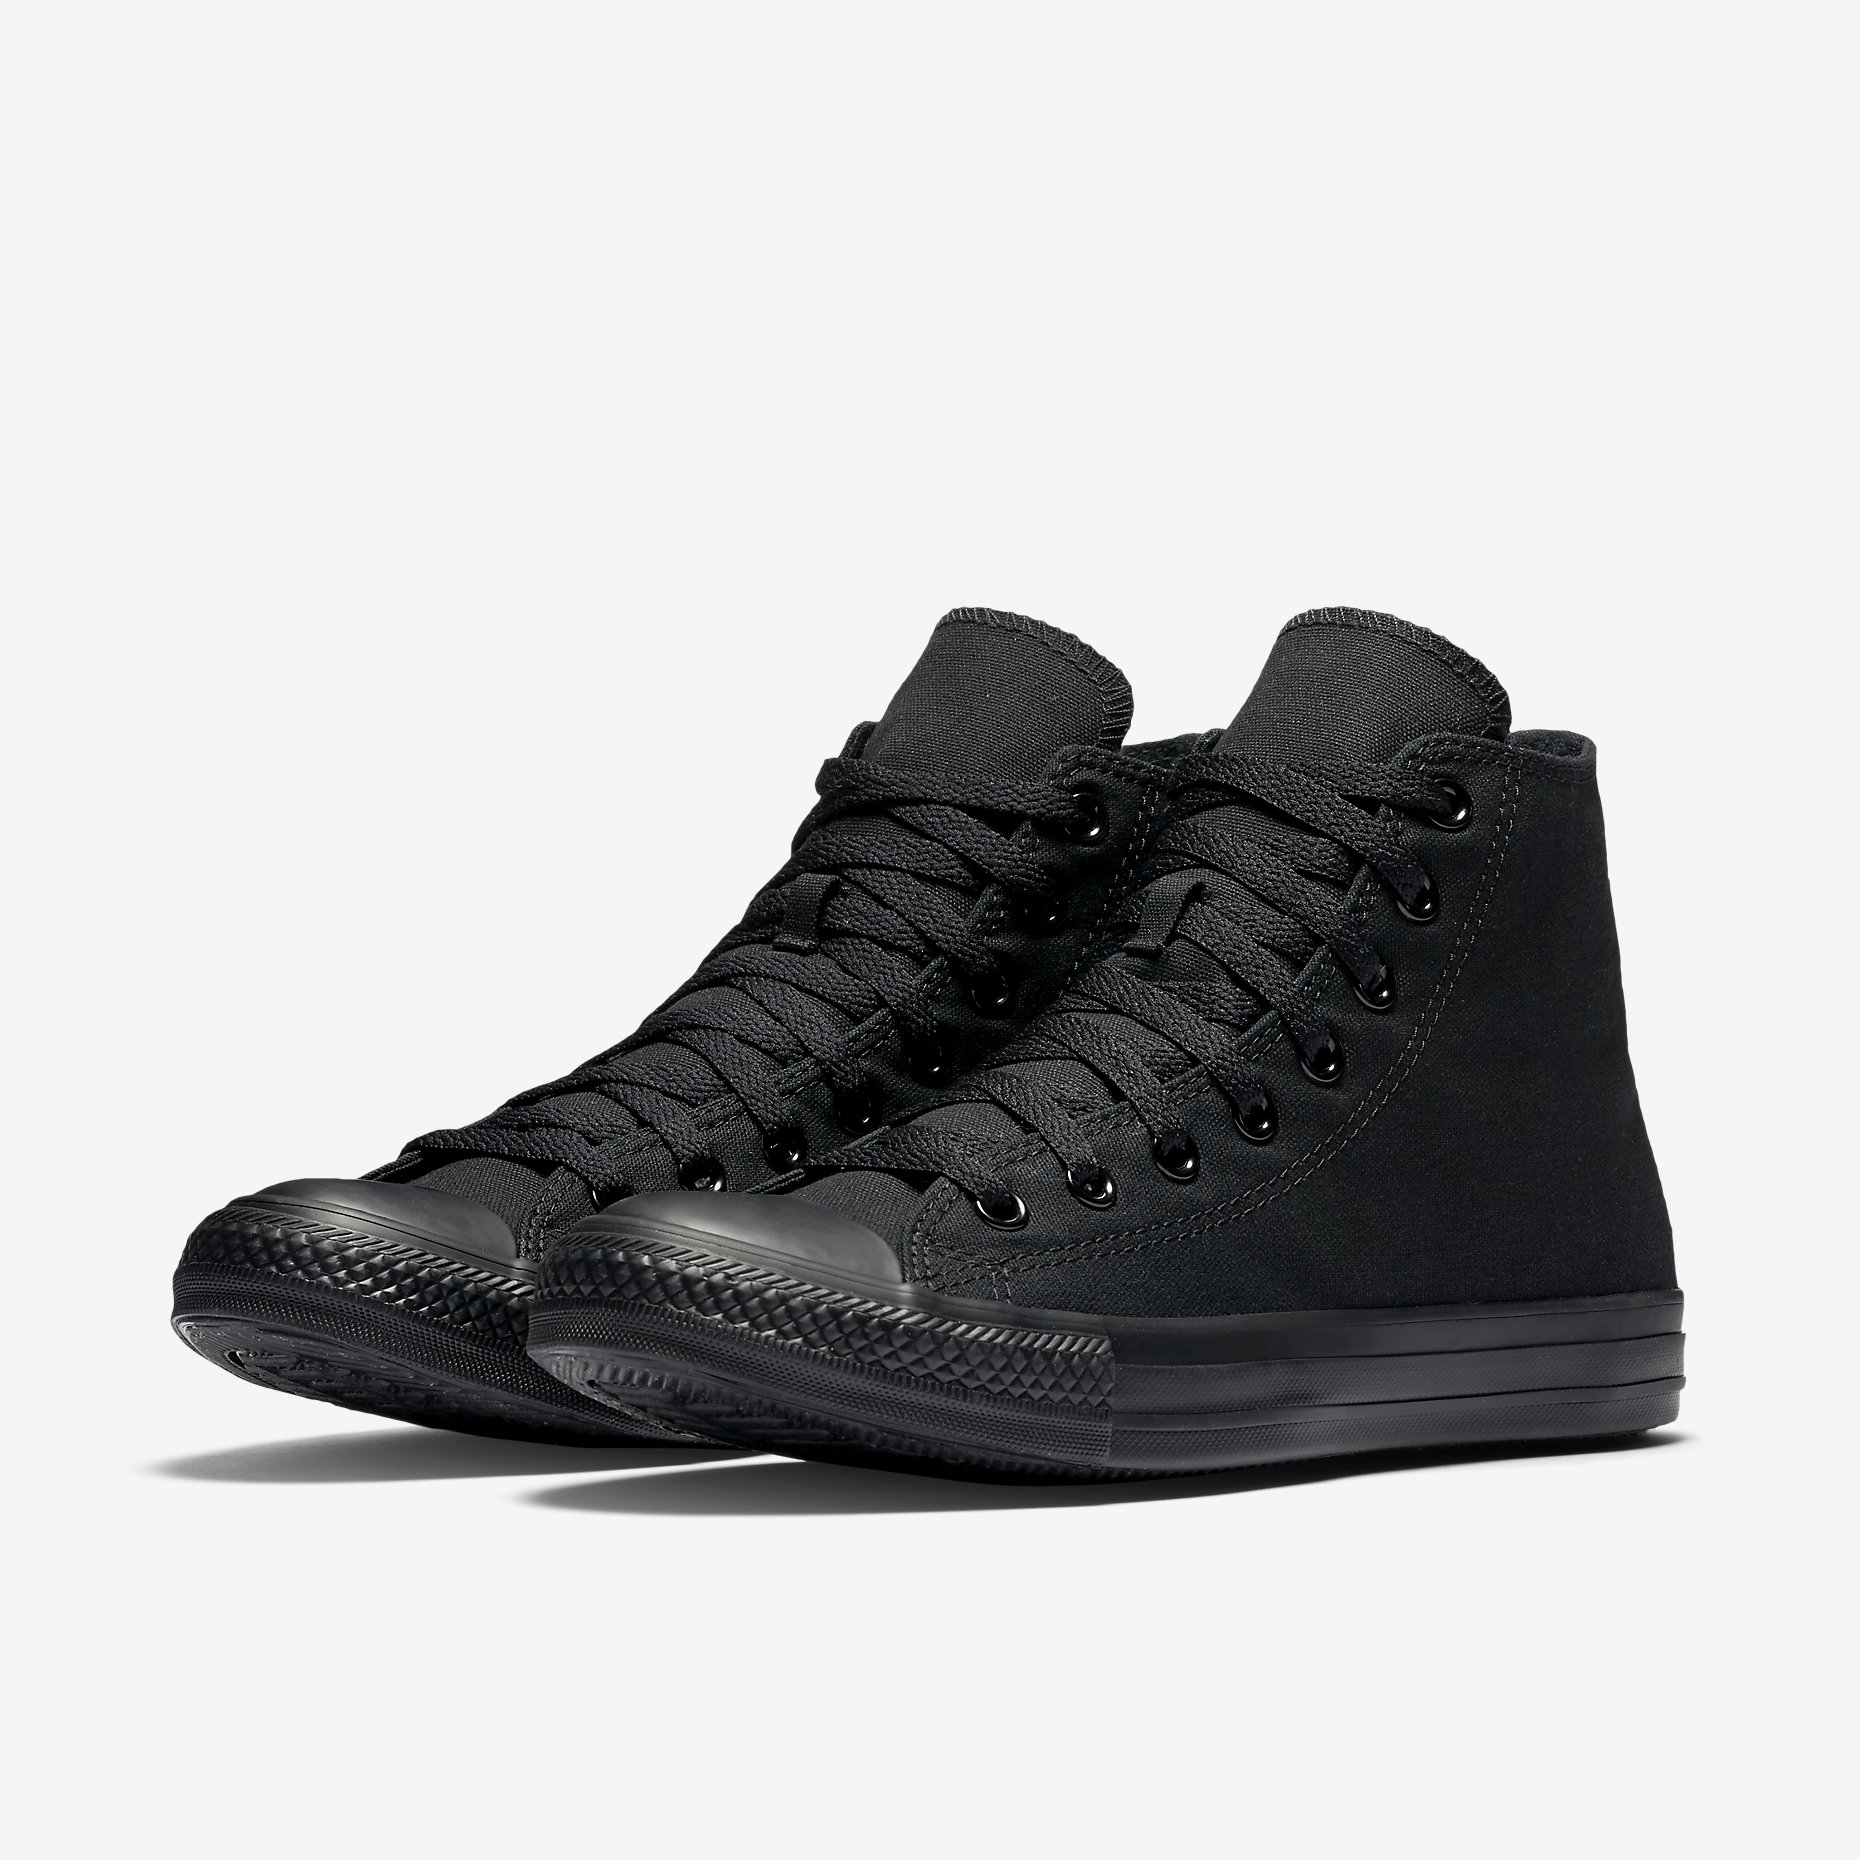 6737a1de9b90 new zealand converse chuck taylor all star high top black black spinners  sports 44e82 a64d2